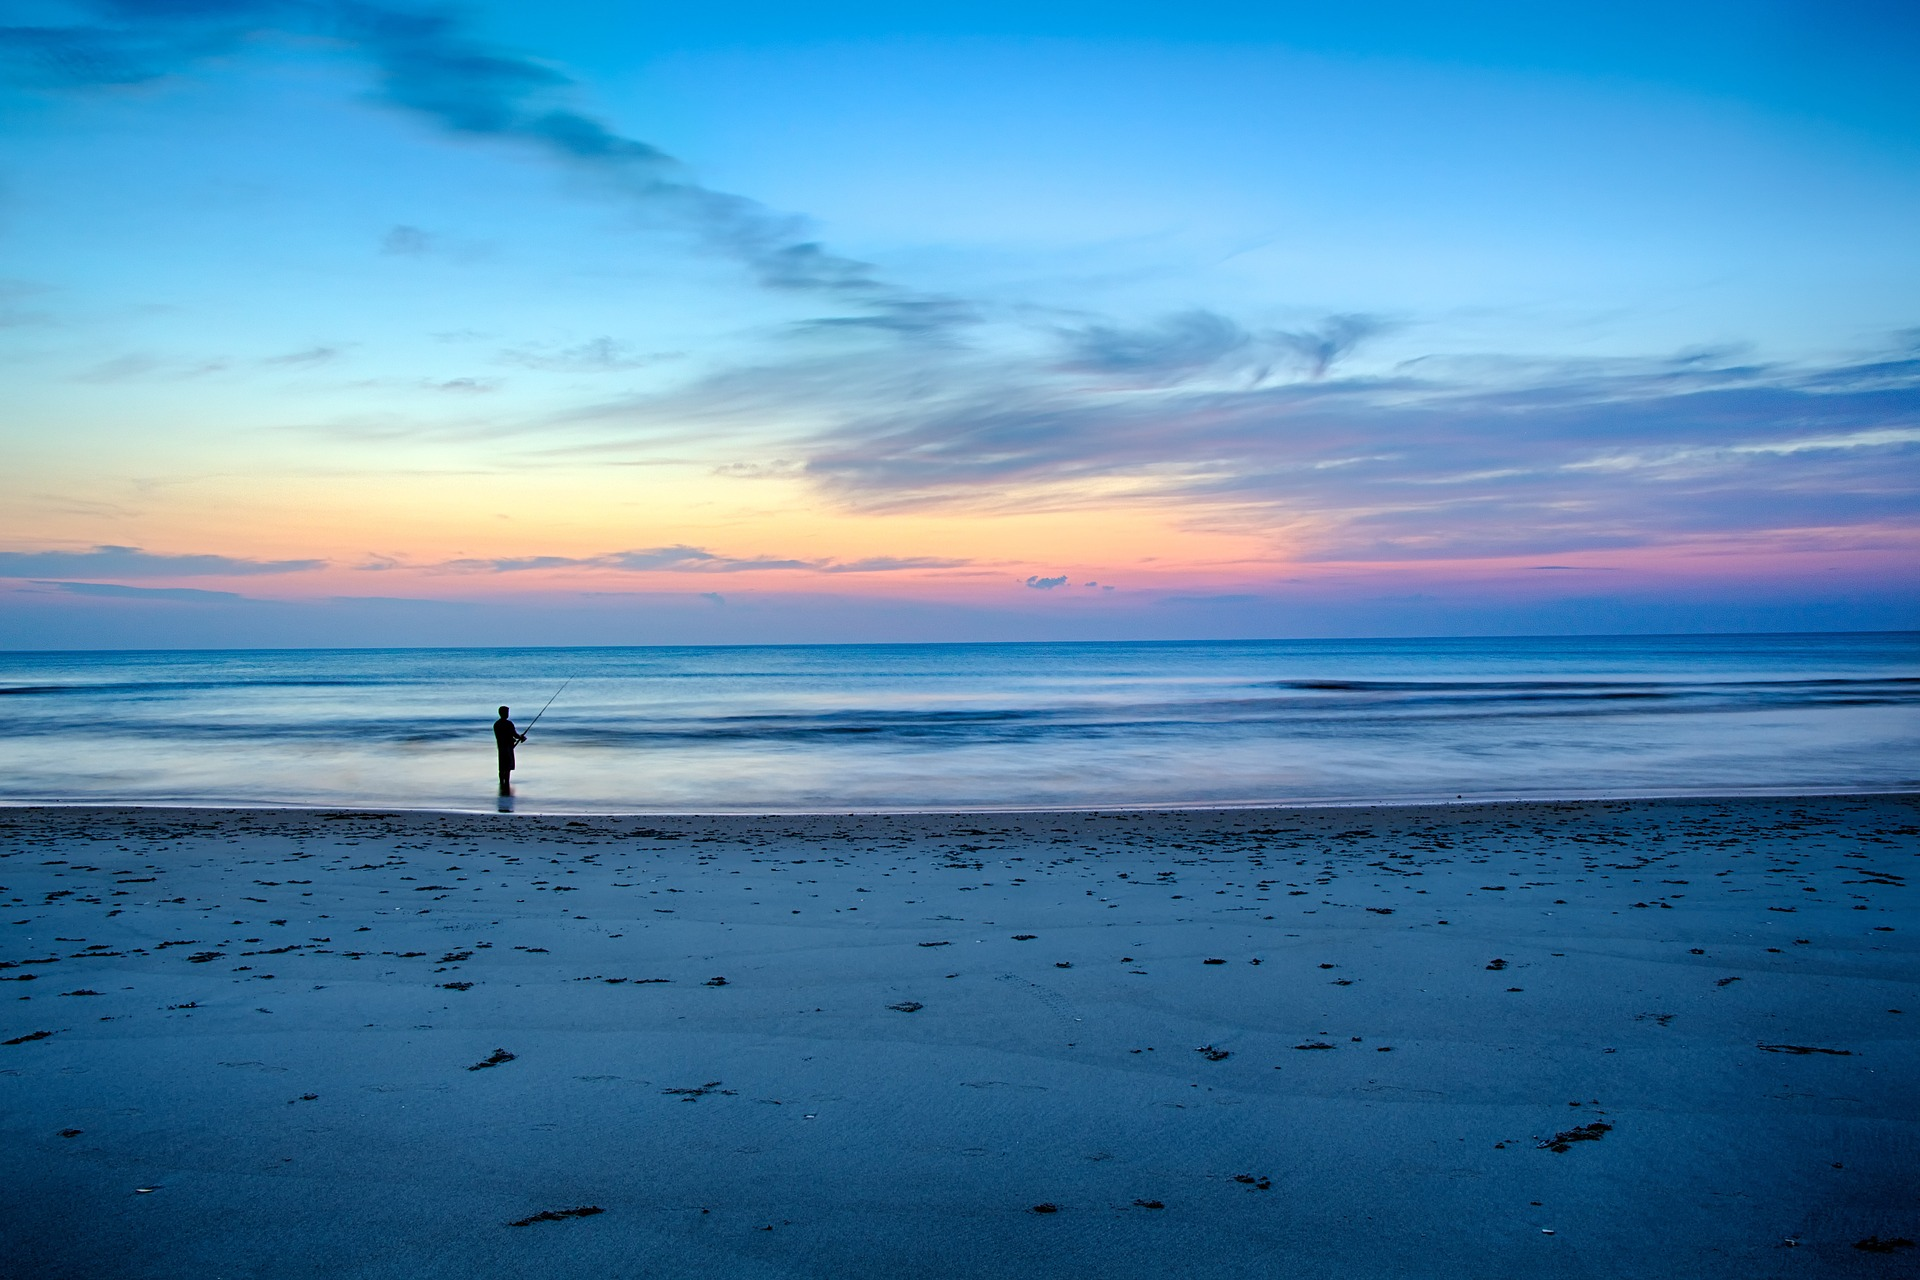 Top 5 free things to do in north myrtle beach nvjuhfo Gallery